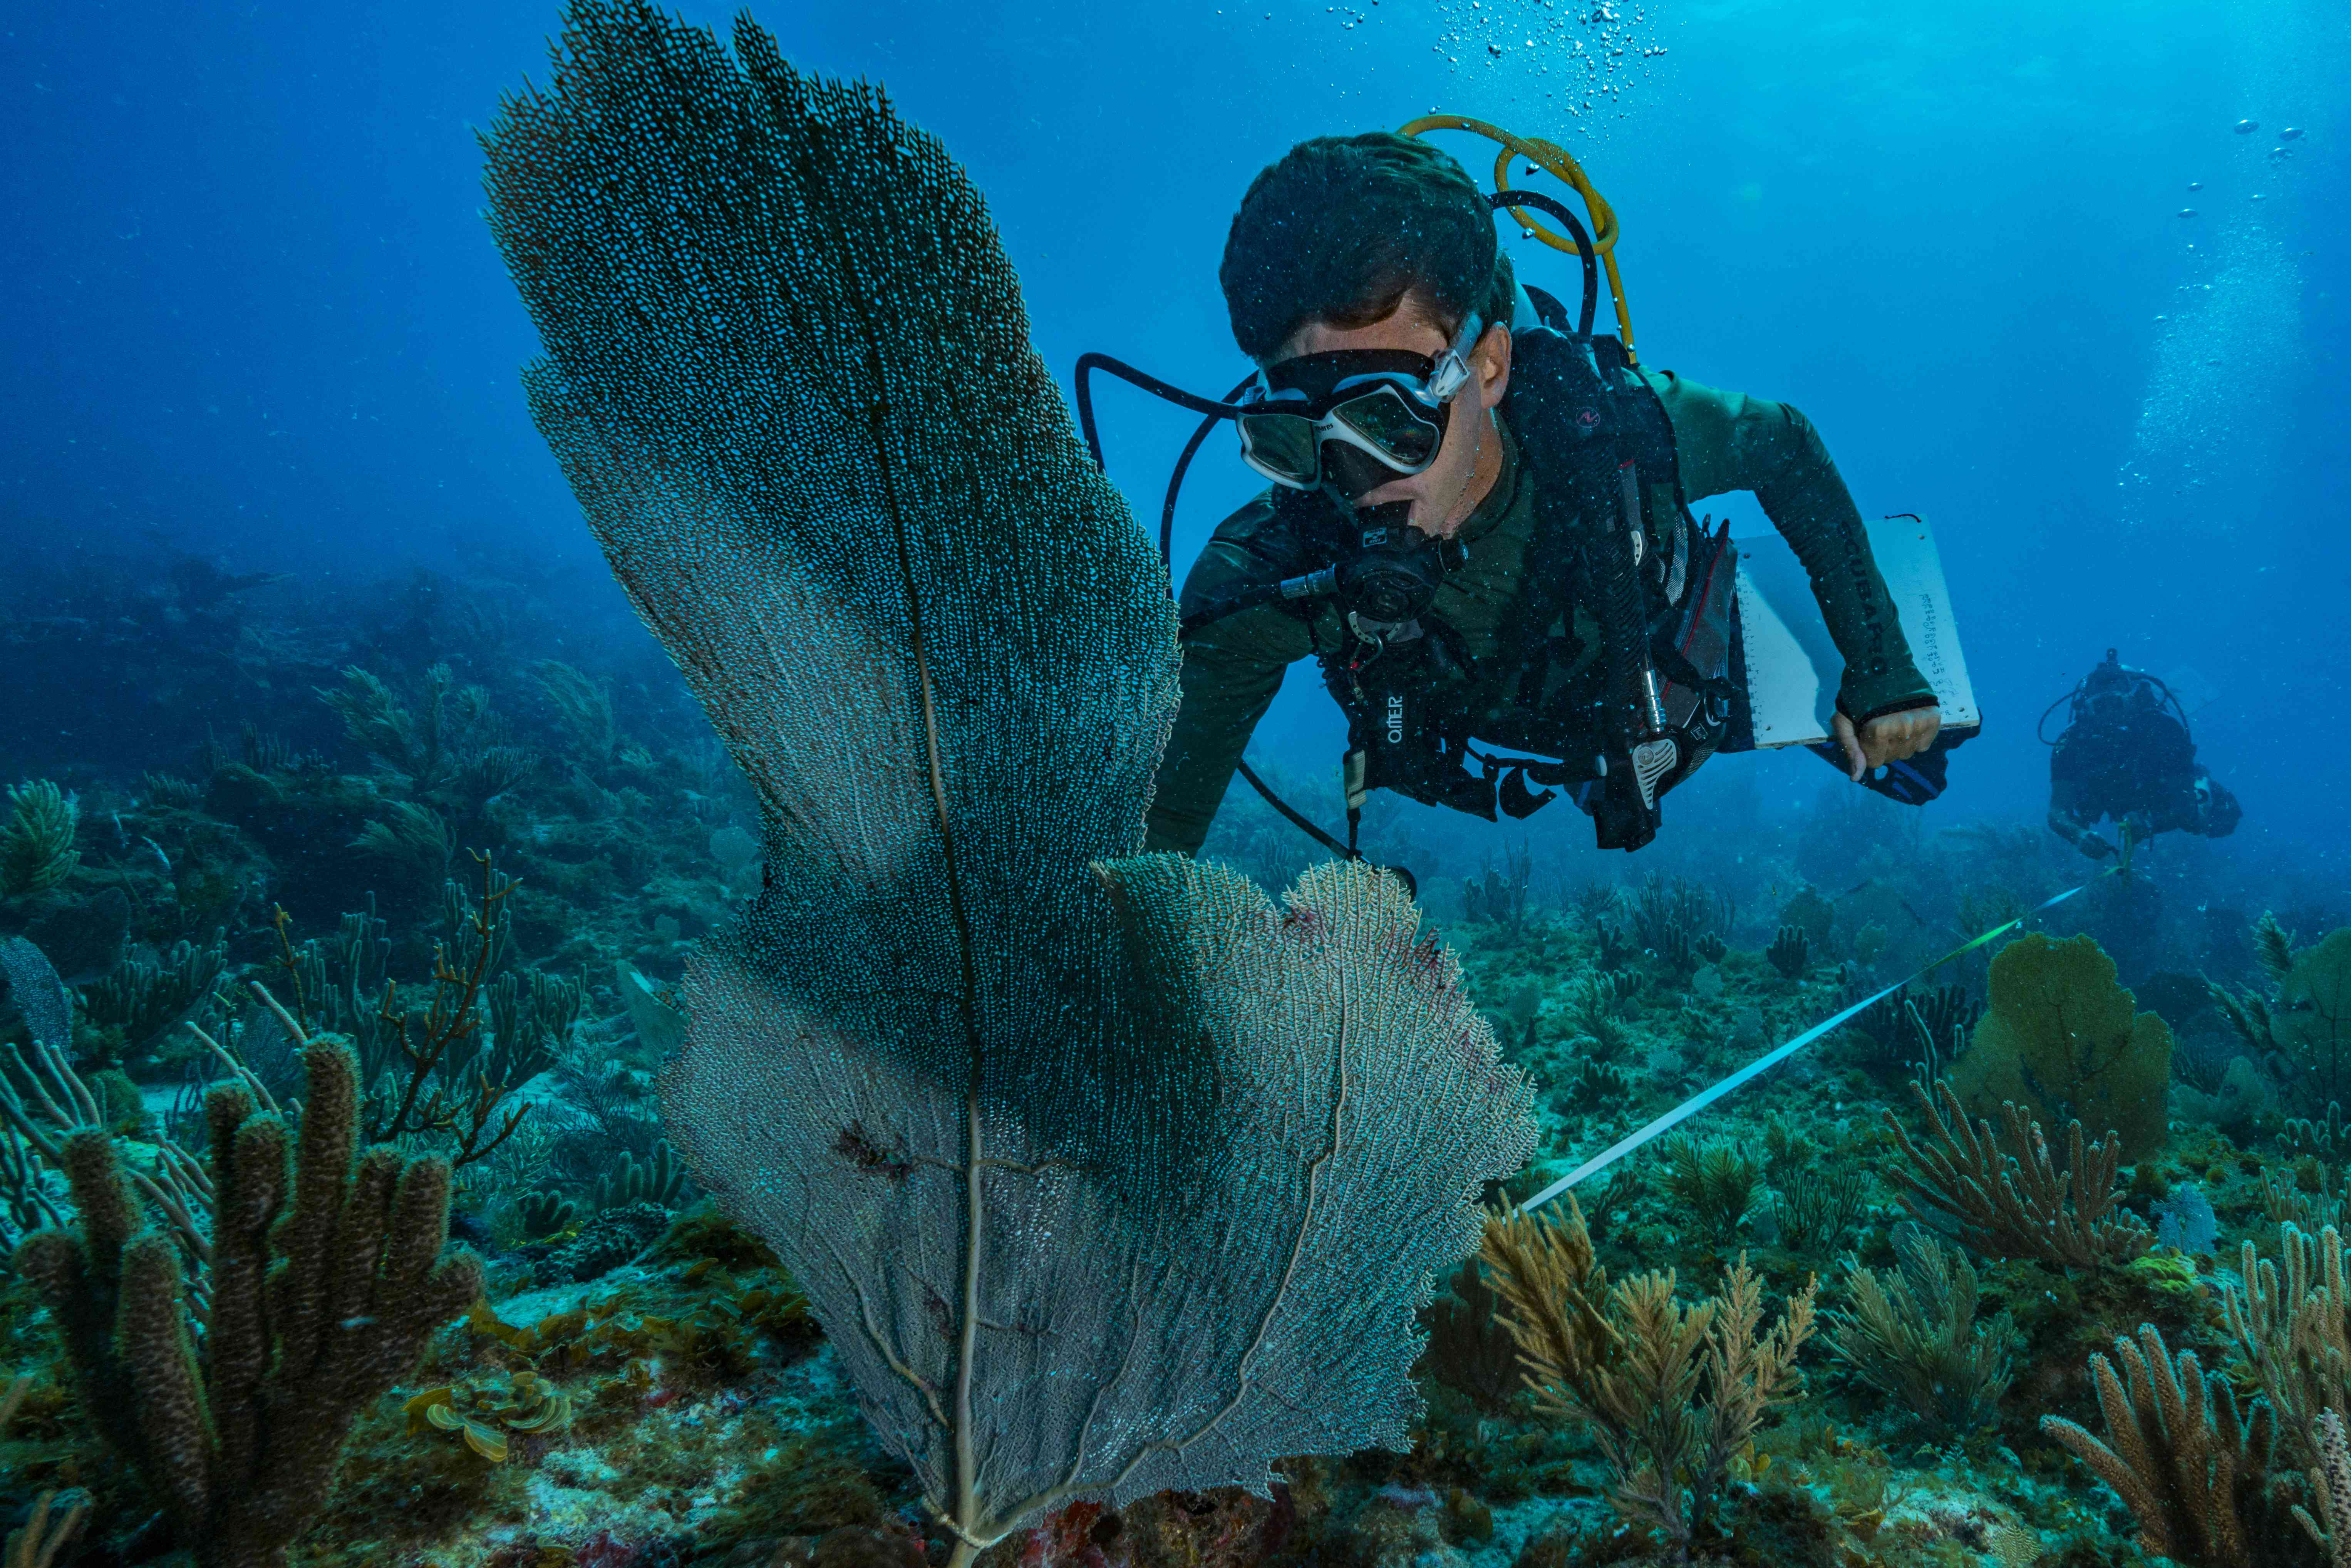 Diving on the coral reef of St. Martin